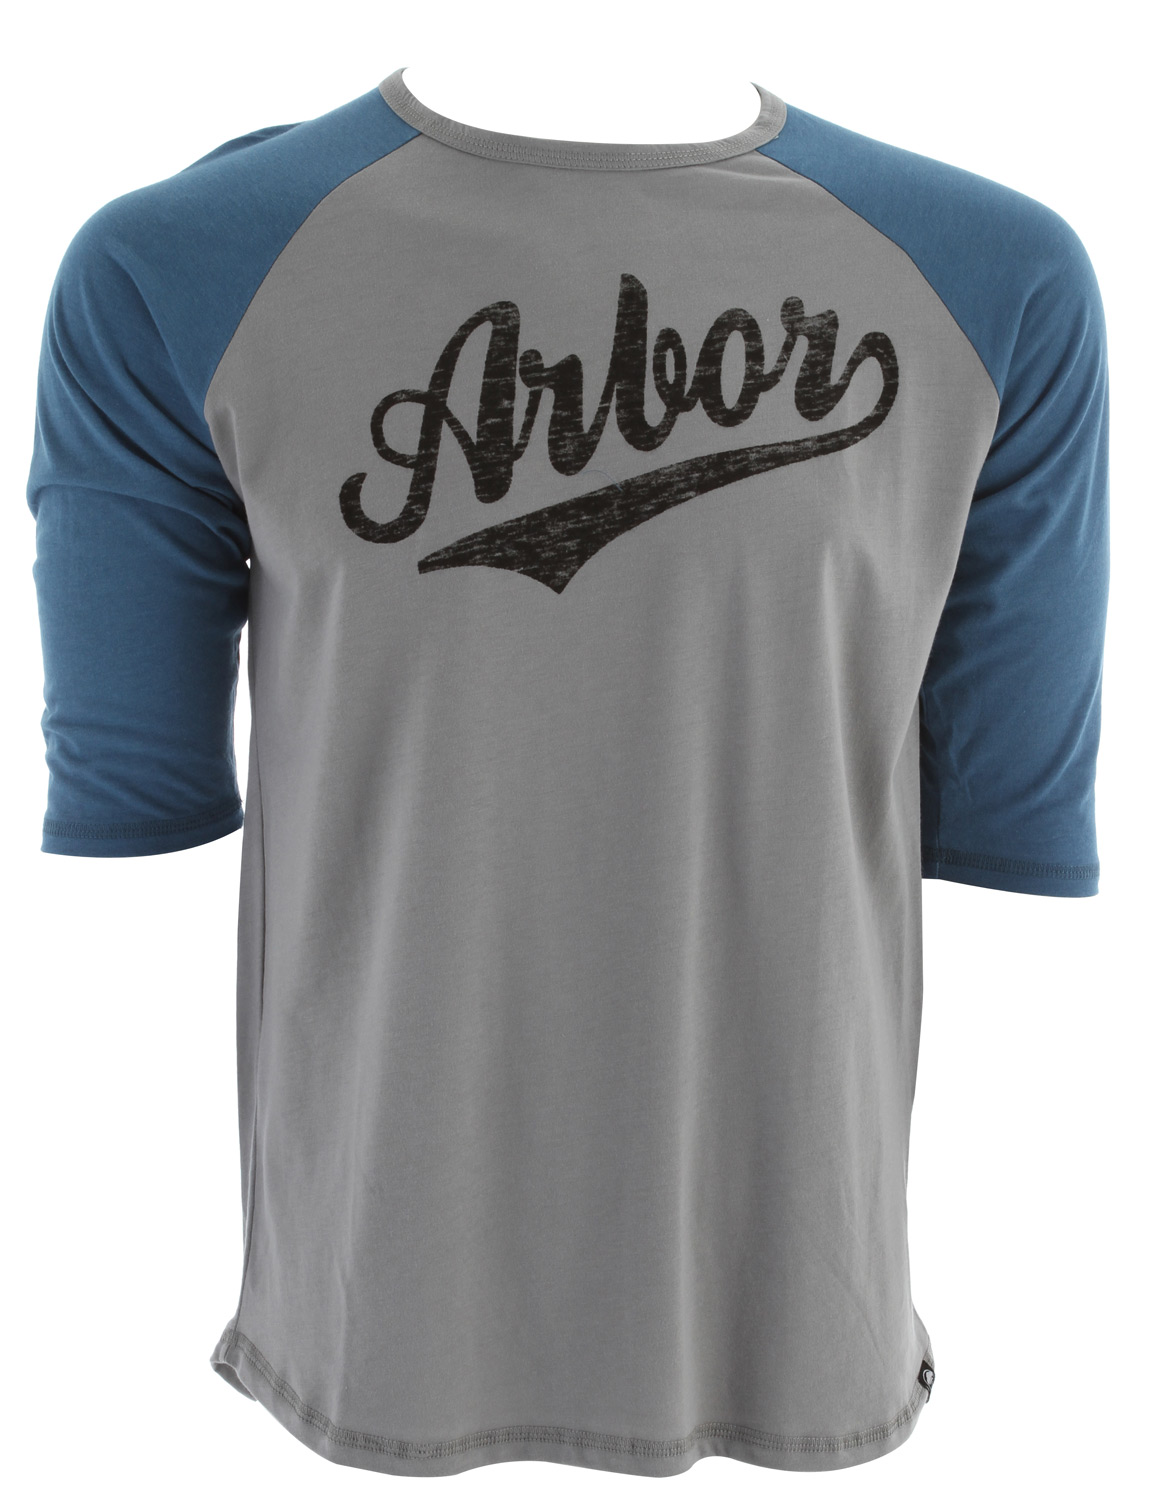 Sports Key Features of The Arbor Durham 3/4 Sleeve T-Shirt: Regular Fit Crew Neck Short Sleeve 70/30 viscose from bamboo Organic cotton jersey raglan baseball tee w/ inside print - $26.95